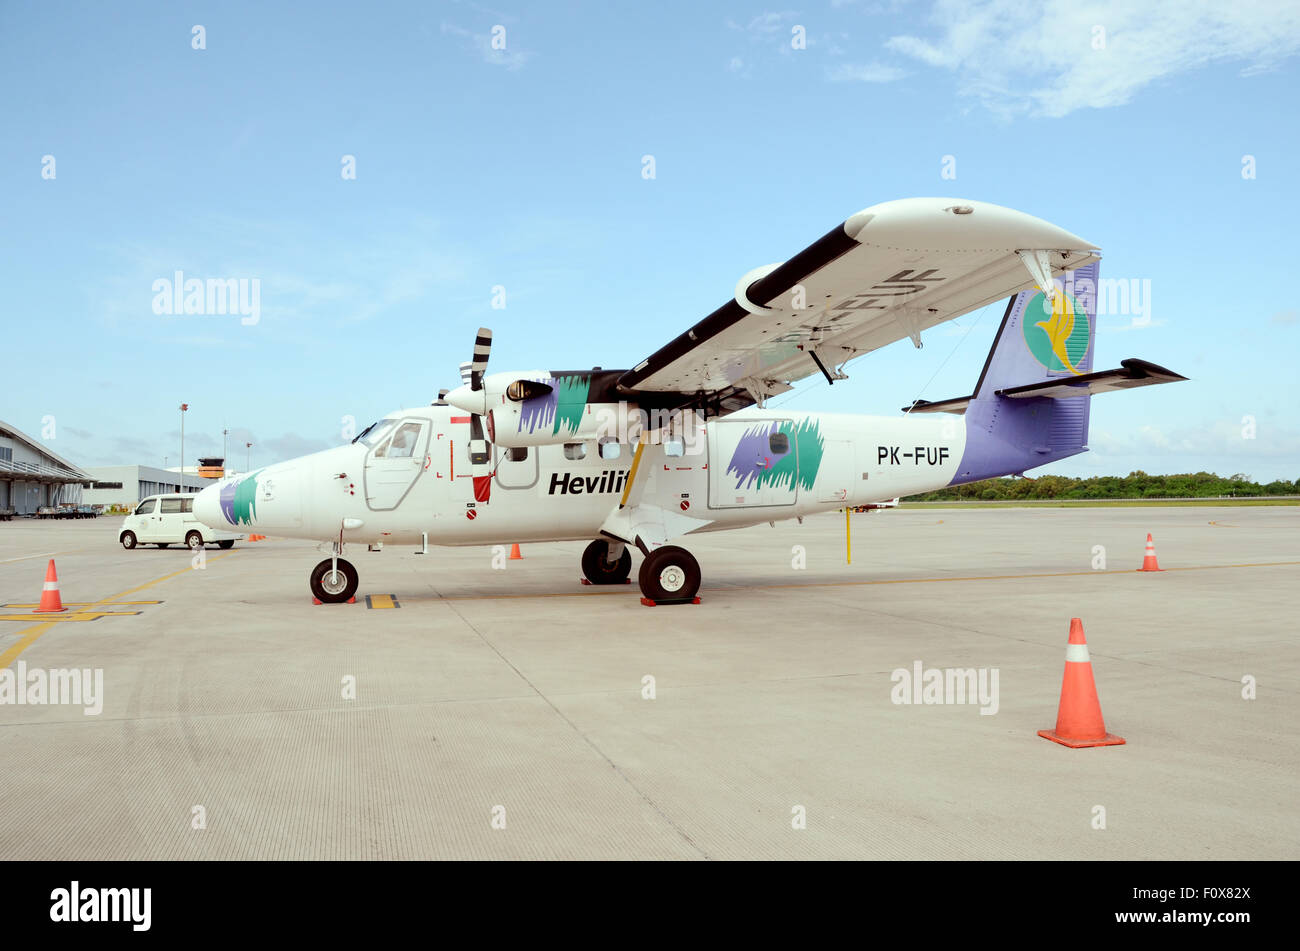 twin-engine  turboprop aircraft DHC-6 - Stock Image